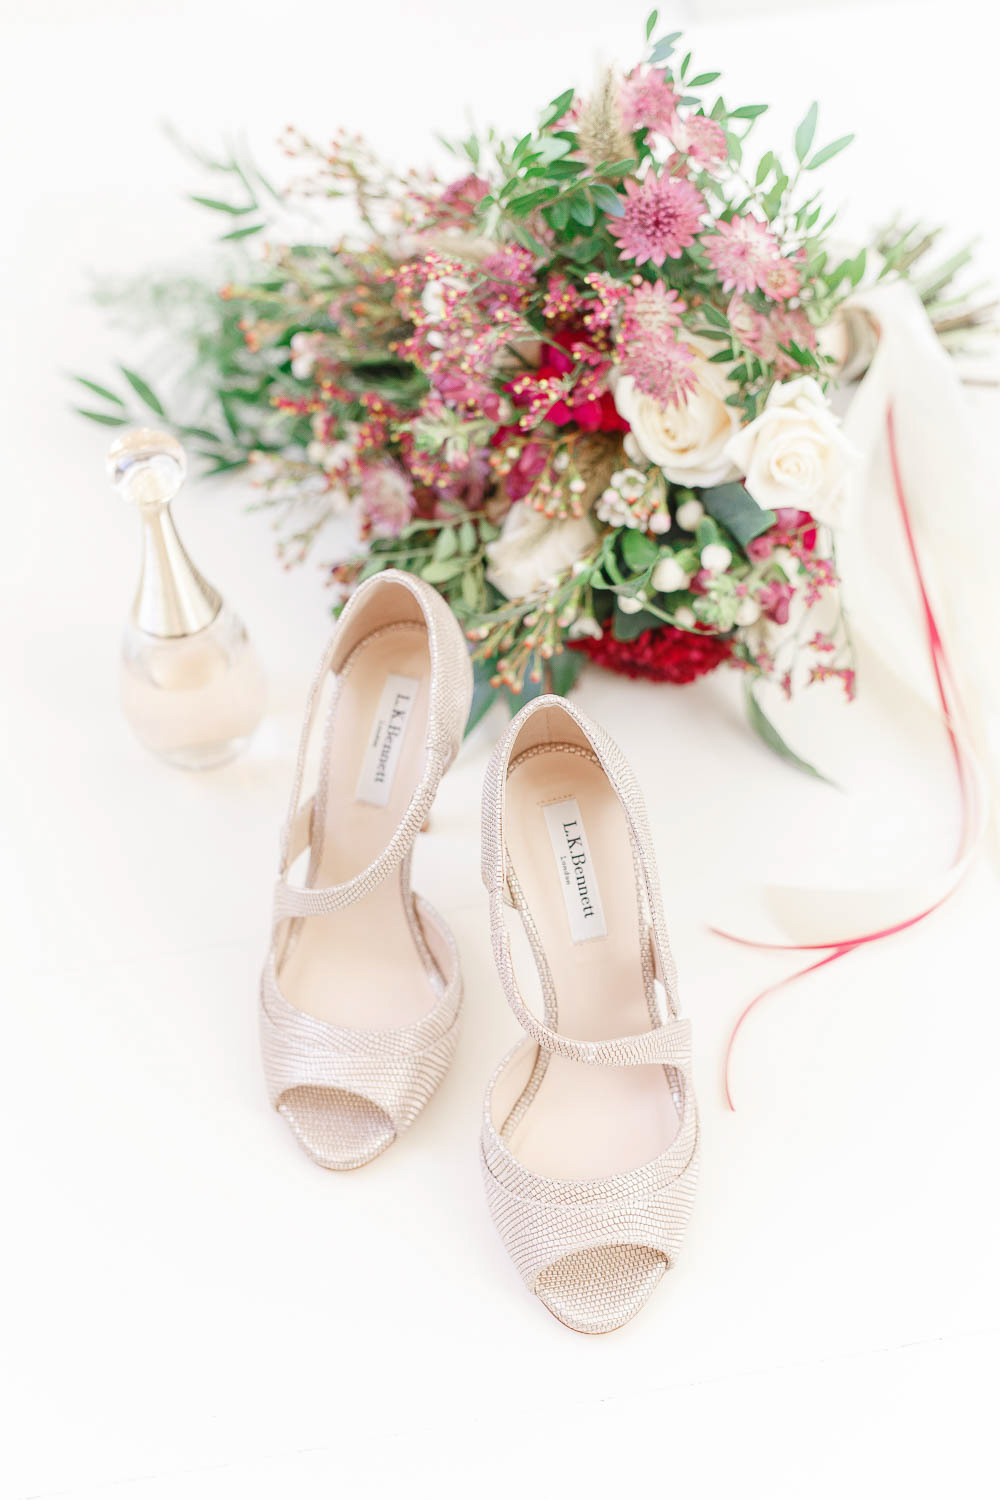 The wedding shoes were sparkling ones for a elegant and shiny touch